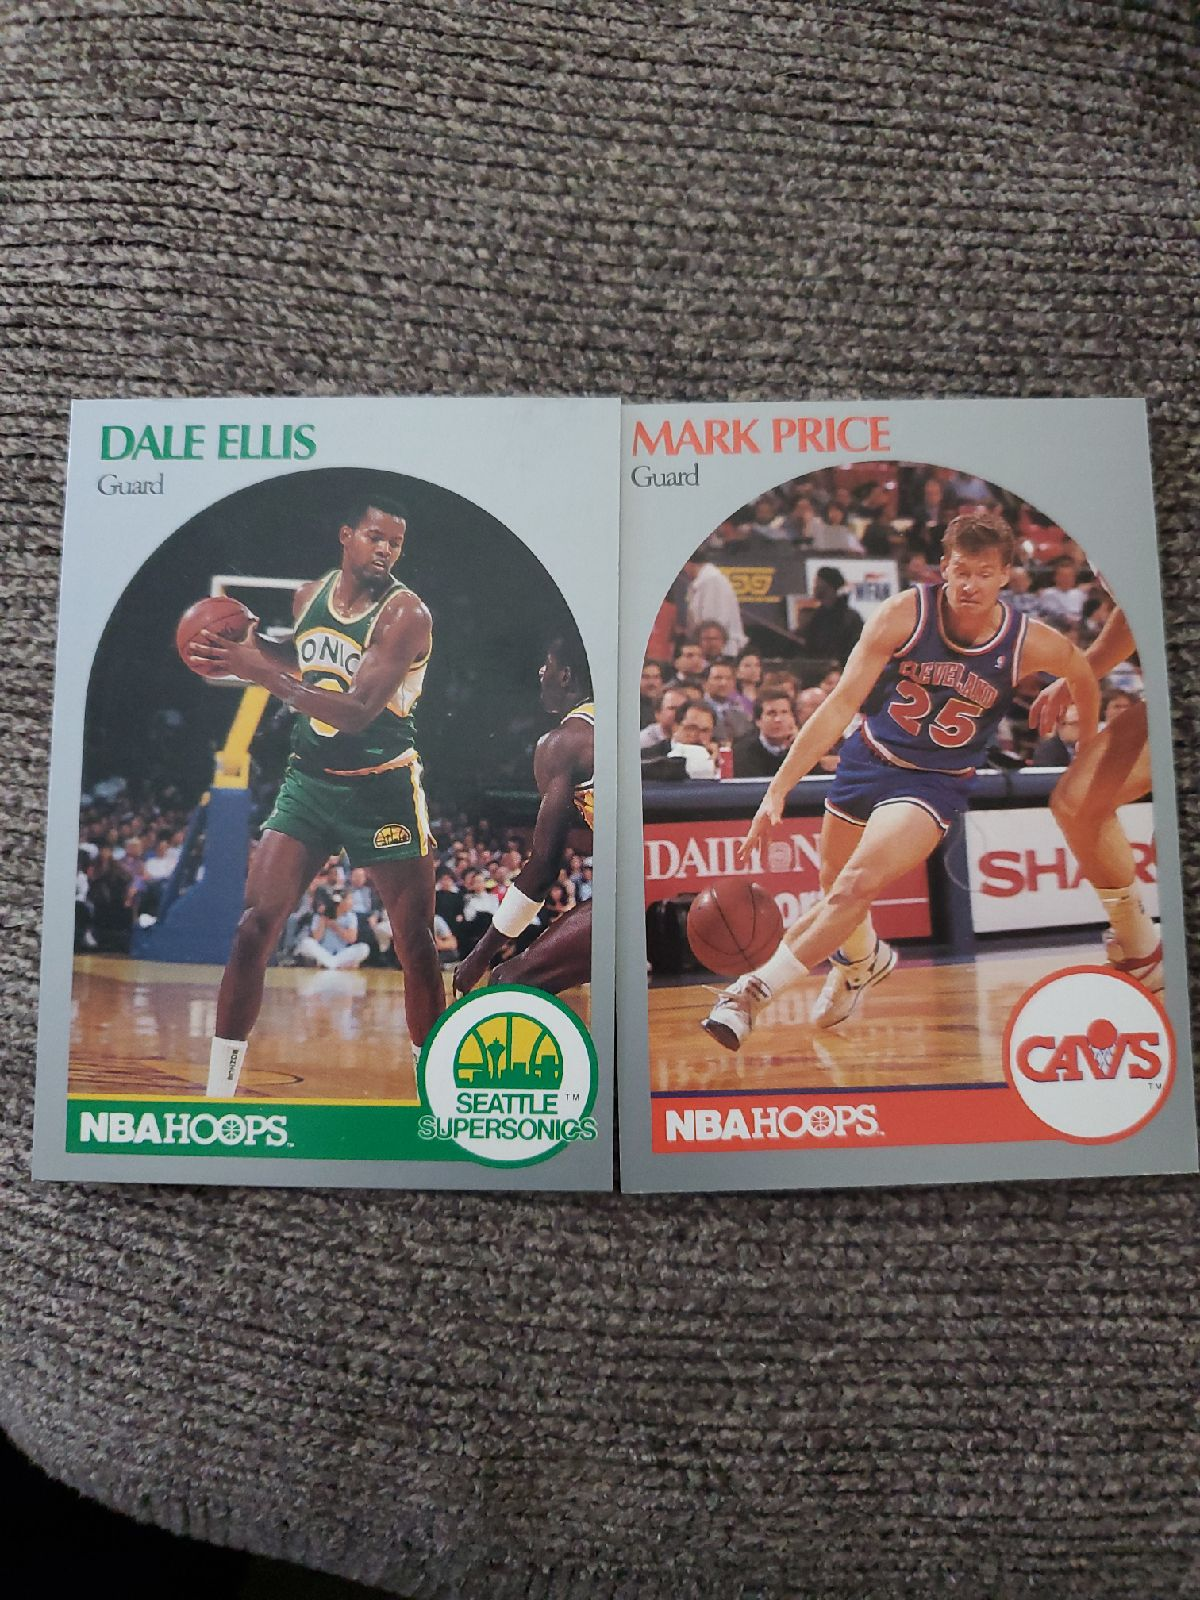 NBA Hoops cards early 80 cards